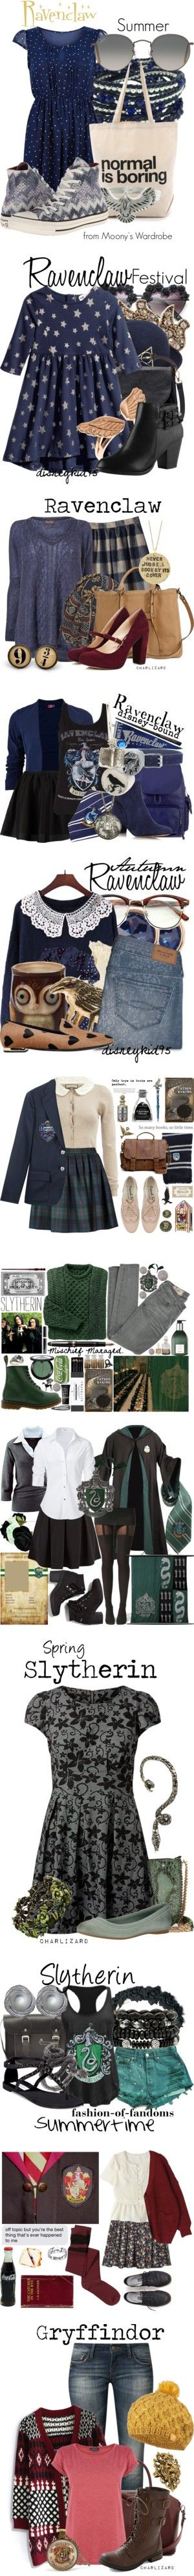 Harry Potter by starrydancer on Polyvore featuring Tenki, Dogeared, Carolina Glamour Collection, Converse, Ray-Ban, Summer, harrypotter, hogwarts, ravenclaw and Warehouse